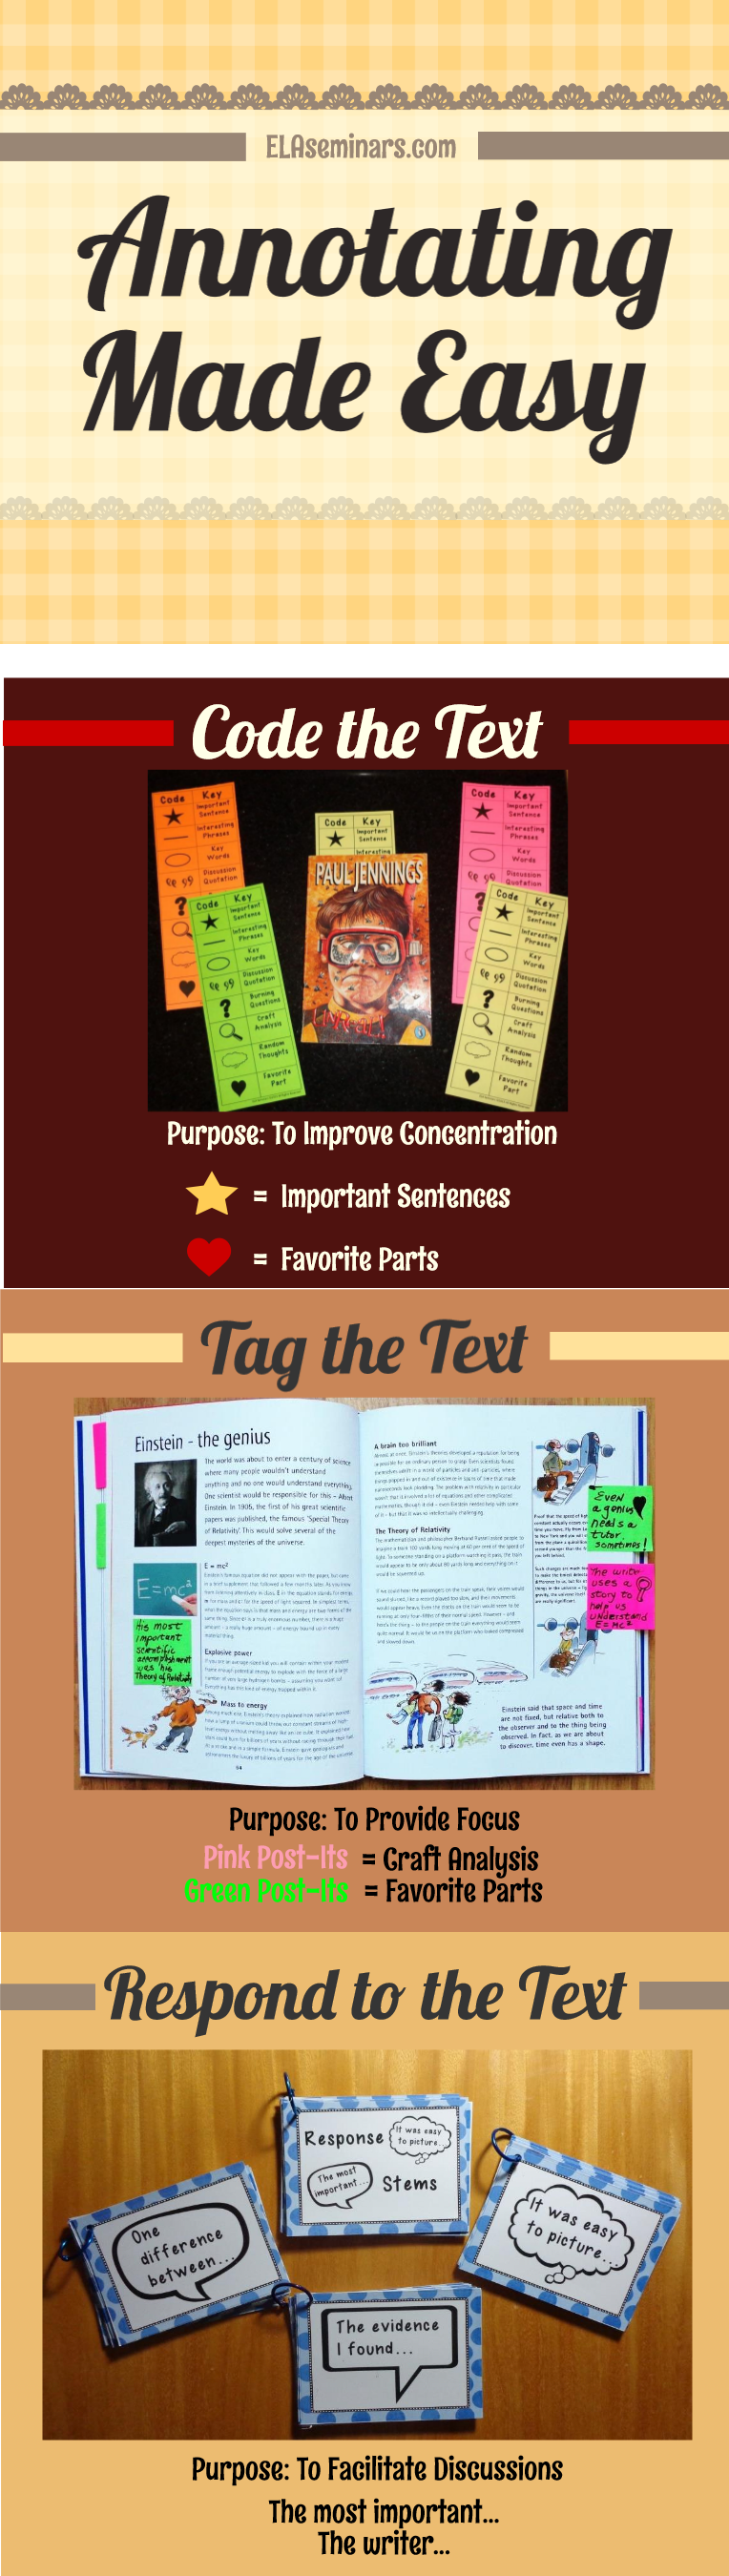 #writerreporterauthor #assignments #proficient #annotation #colorcoded #annotating #struggling #available #academic #interact #response #favorite #annotate #pictured #graphicClose Reading Annotation Tools Three Ways to Annotate: 1) Code reading assignments with your favorite graphic codes. 2) Tag text with a purpose by using color-coded Post-Its. 3) Use academic response stems to interact with the writer/reporter/author. **Annotating helps struggling readers to focus and proficient readers to lo